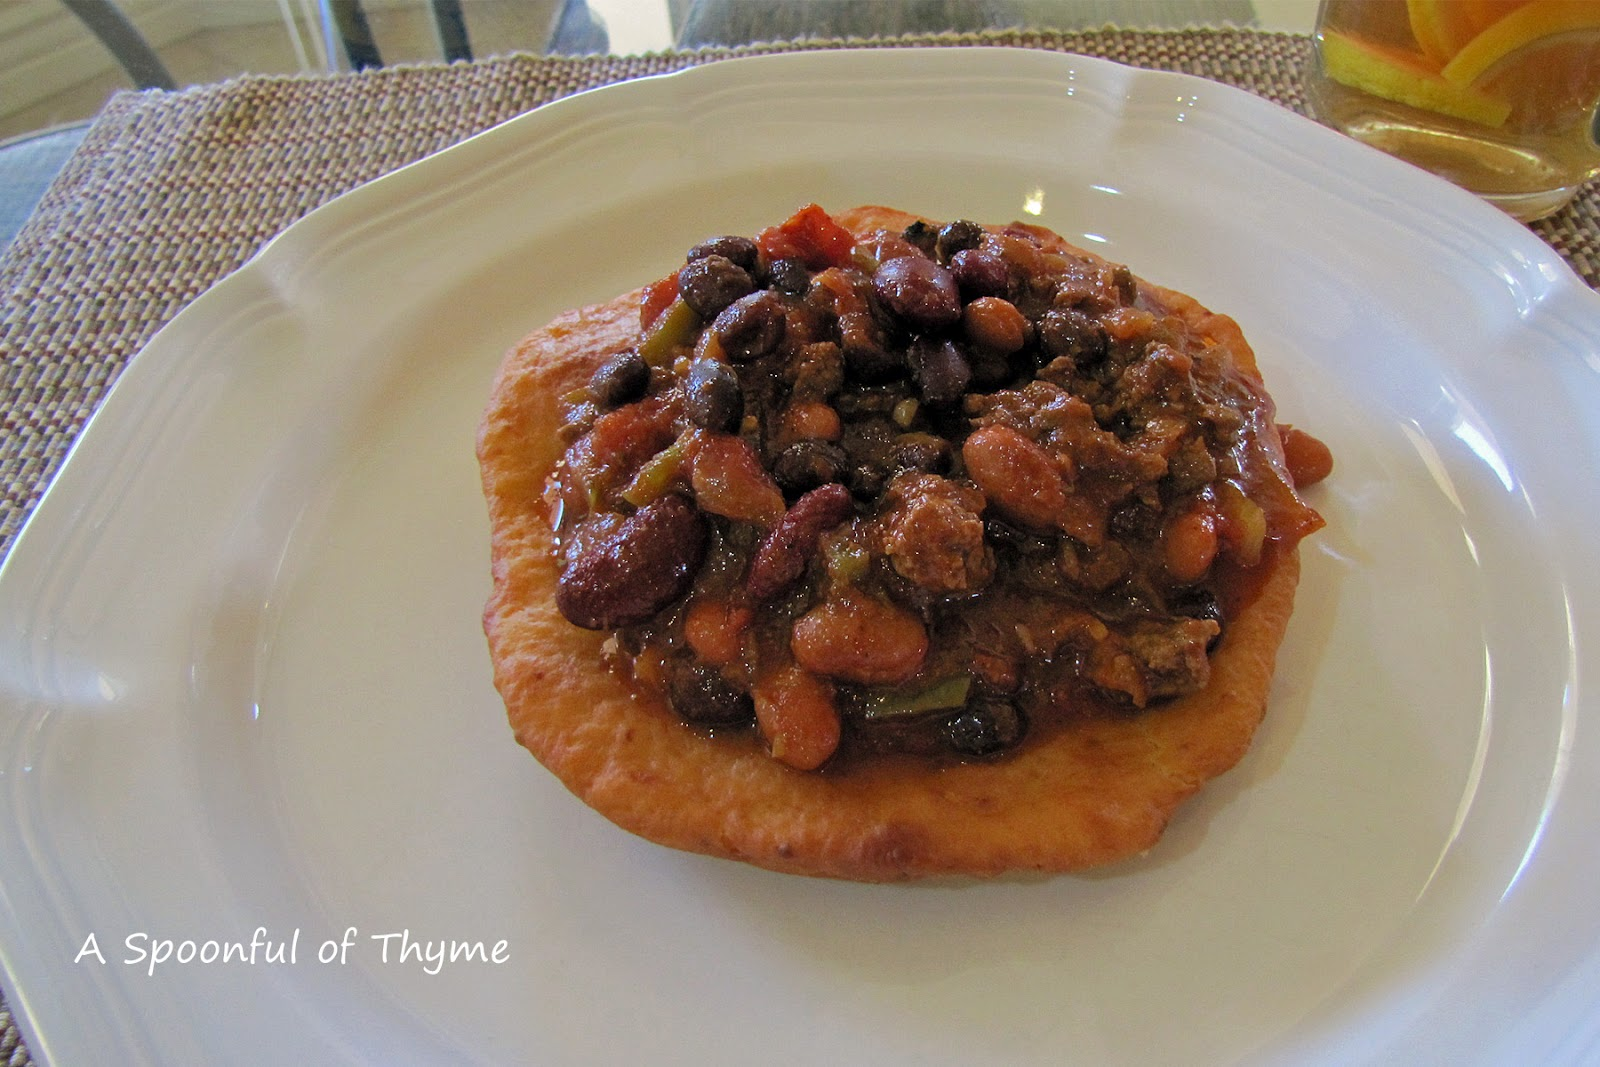 A Spoonful of Thyme: Navajo Tacos - Beef and Three Bean Chili